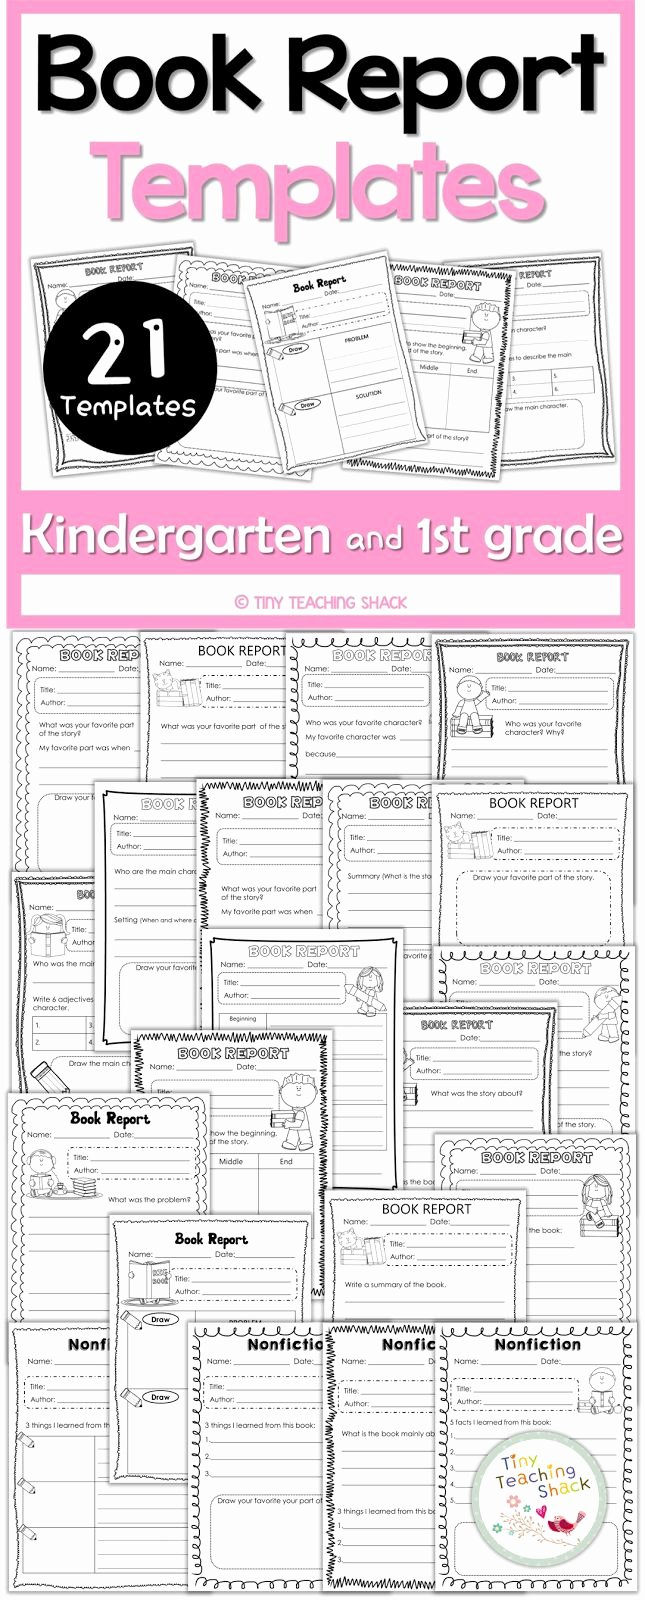 Free Book Report Templates Inspirational Best 10 Book Report Templates Ideas On Pinterest